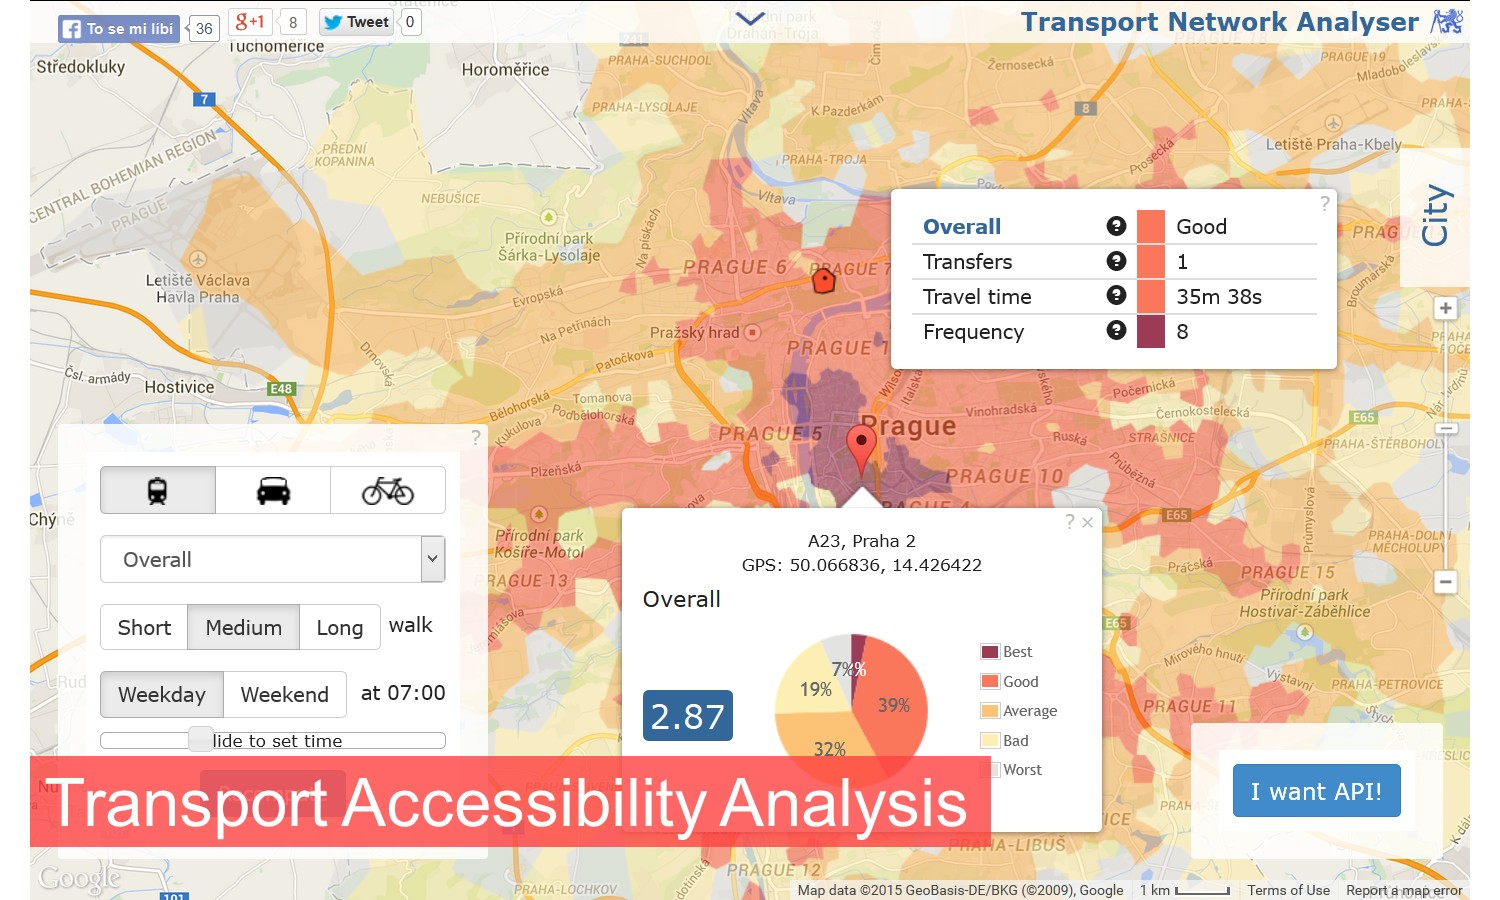 Multimodal Transport Accessibility Analysis